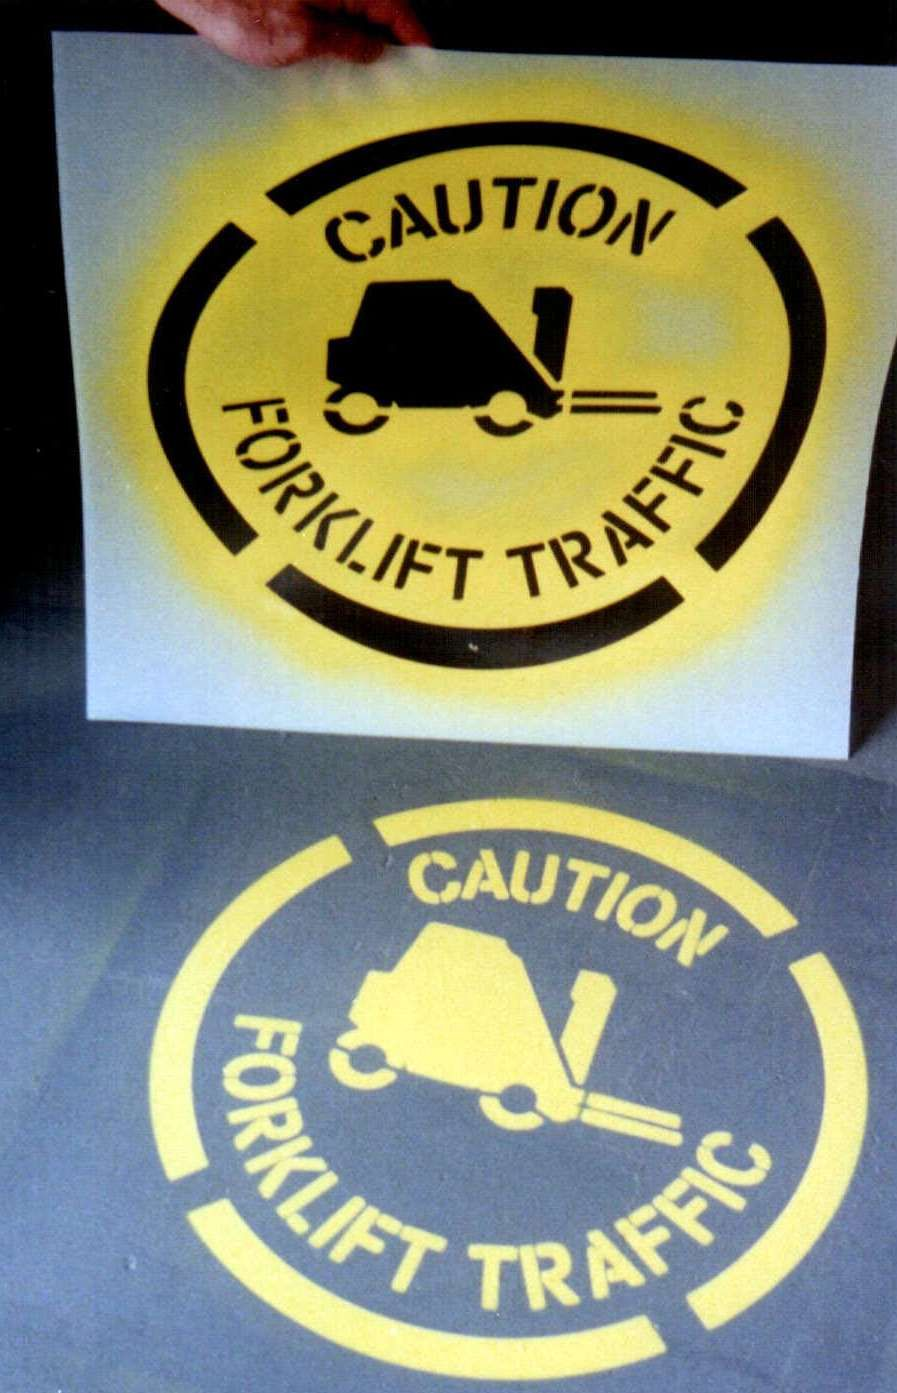 floor markers Industrial flooring, Workplace safety, Markers